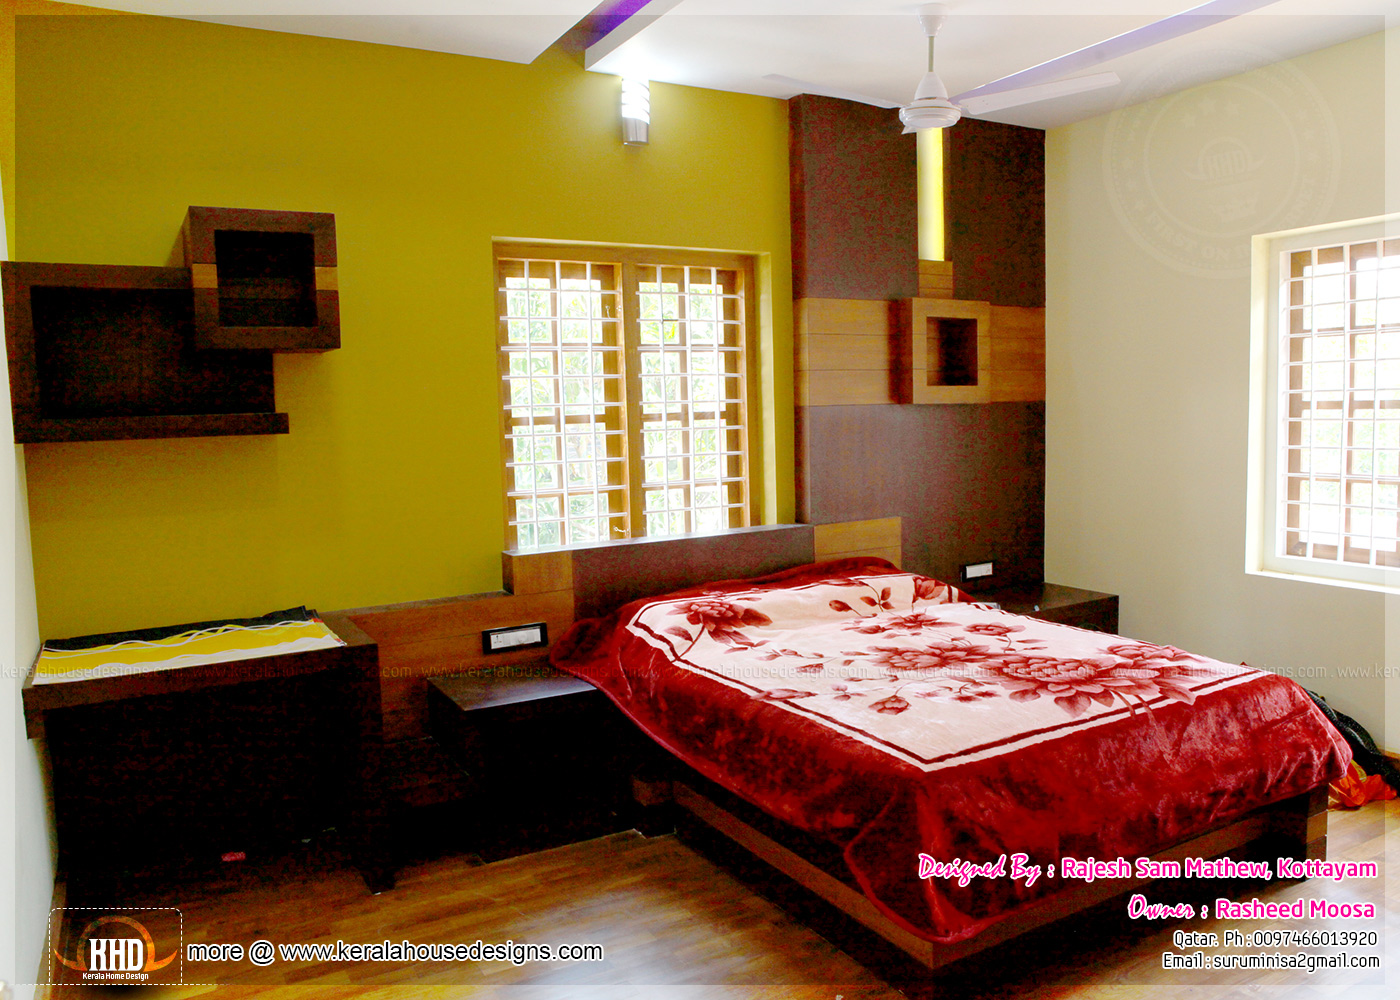 Kerala interior design with photos kerala home design for House plans in kerala with 2 bedrooms